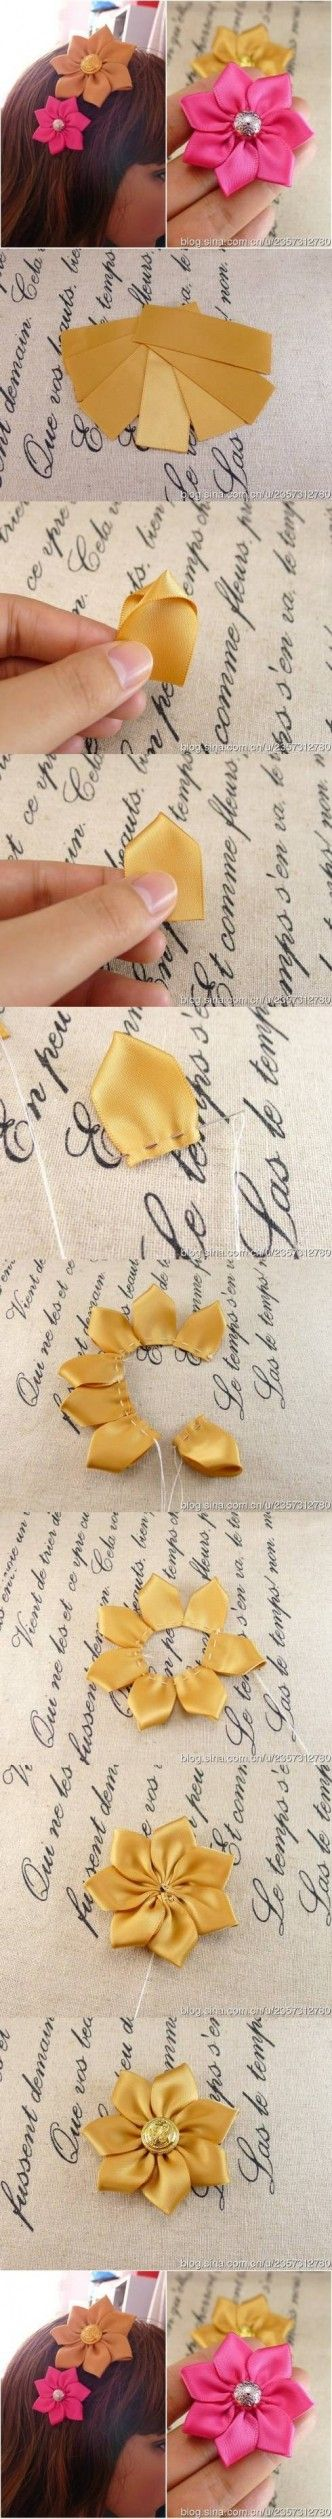 DIY Handmade Ribbon Flowers DIY Projects